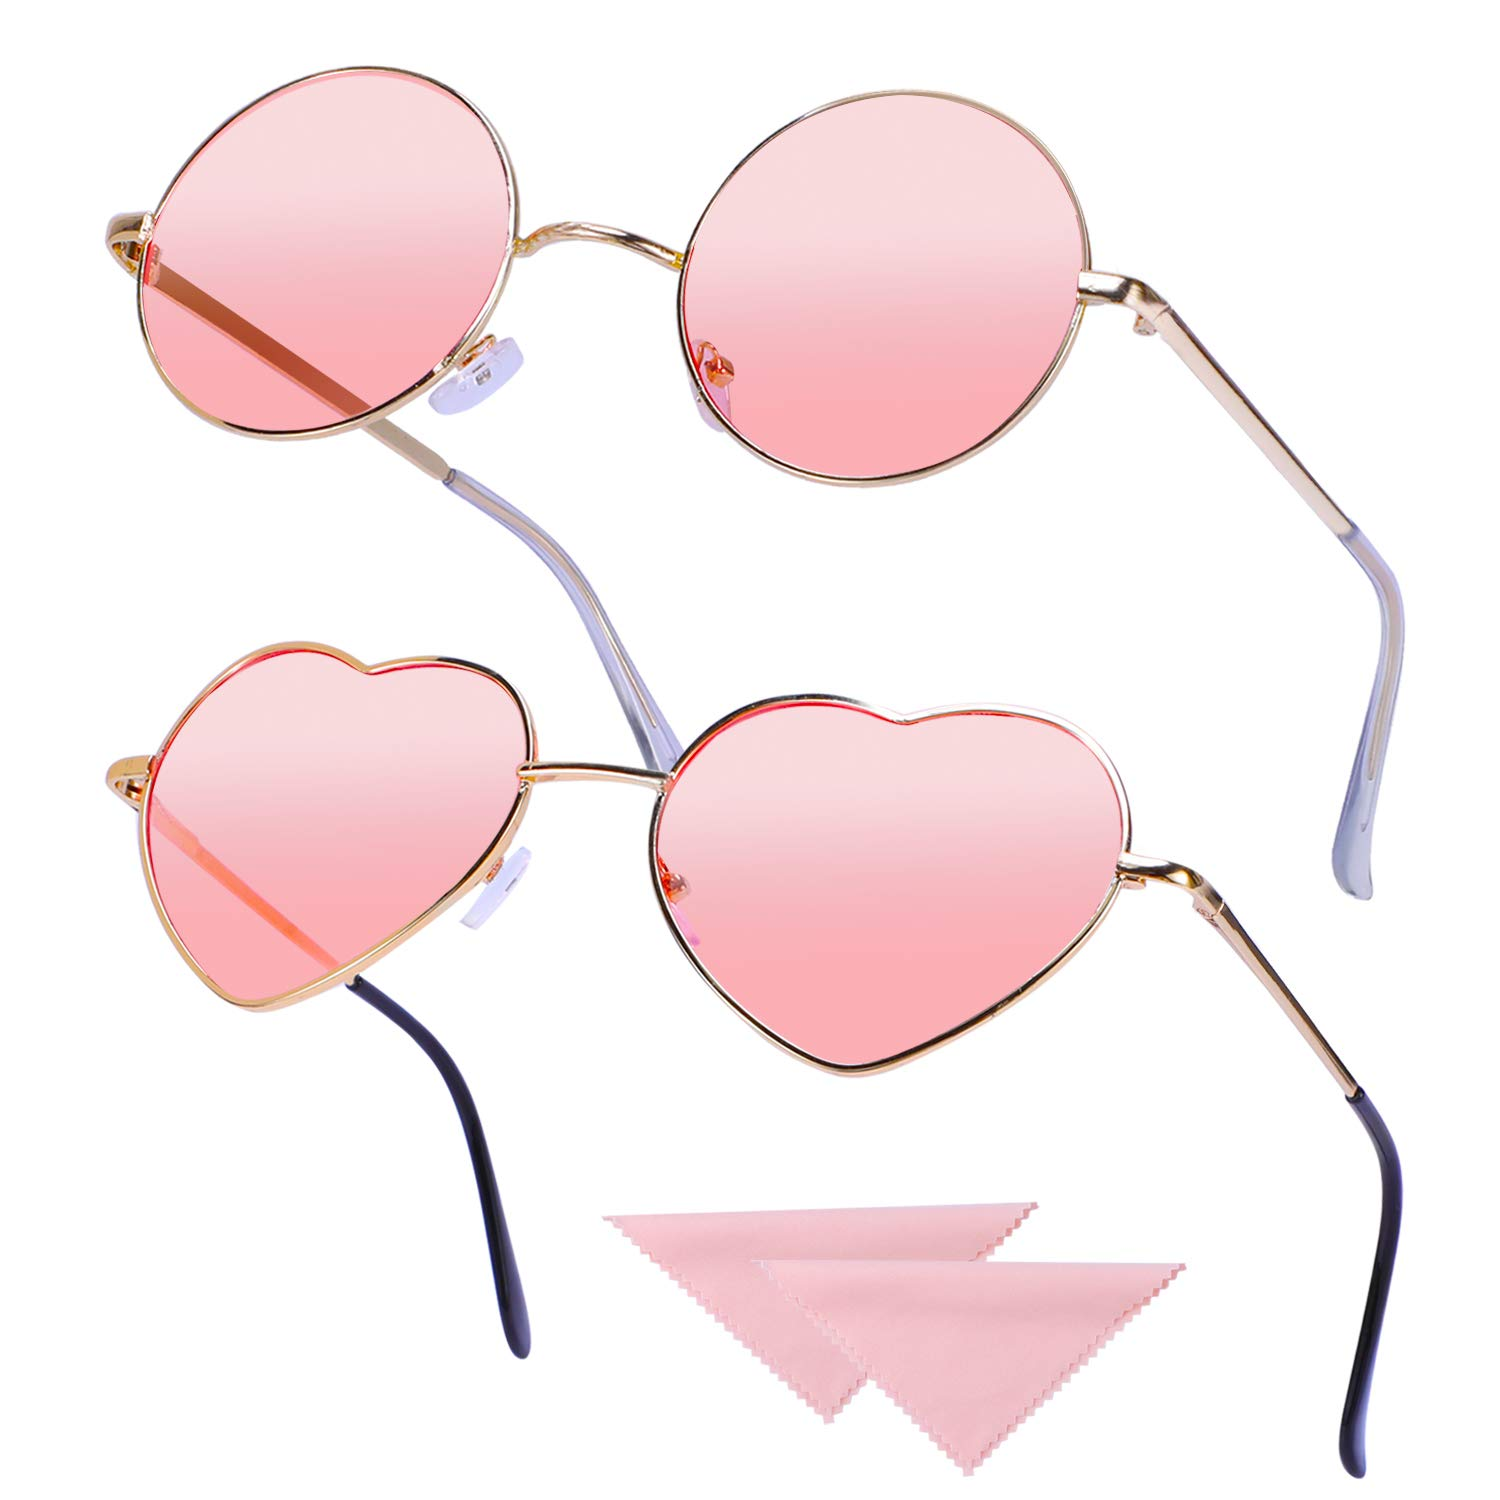 Rose Gold Frame Pink Hifot 2 pack Hippie Glasses Retro Round Glasses Heart shaped Glasses Set for 60s 70s Fancy Dress Accessory Vintage Sunglasses with 2pcs cleaning Cloth